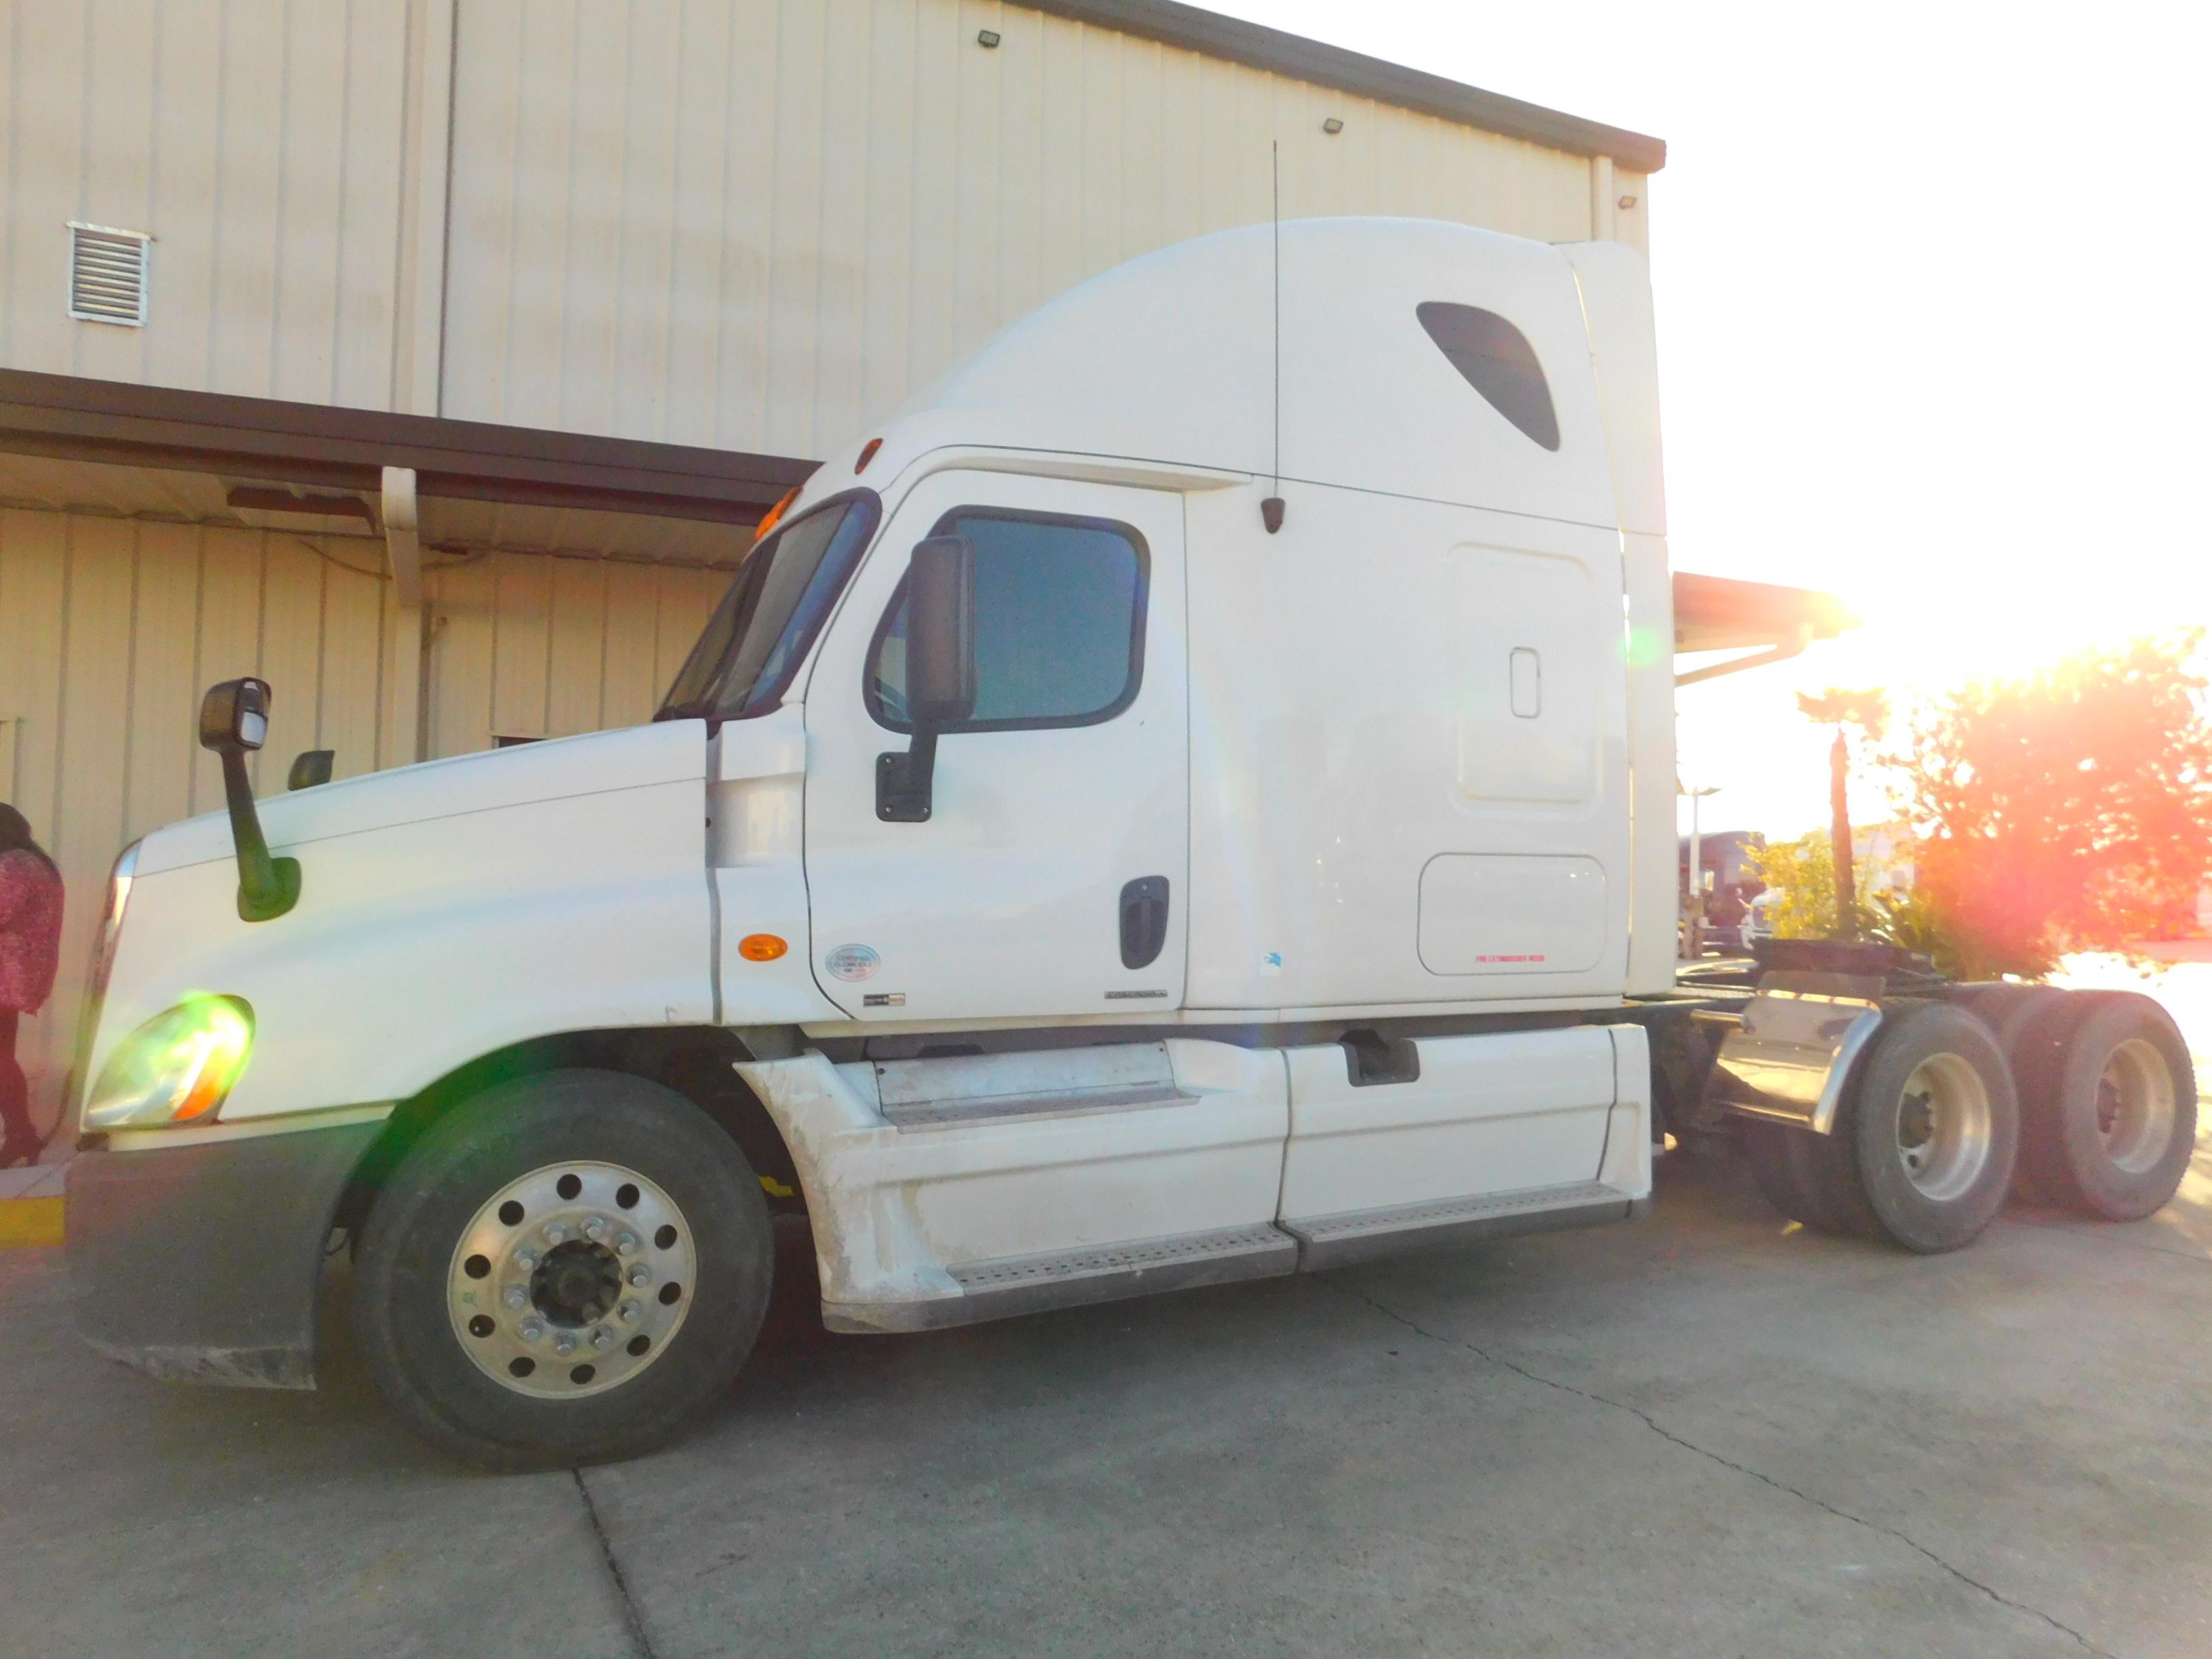 USED 2012 FREIGHTLINER CASCADIA SLEEPER TRUCK #86940